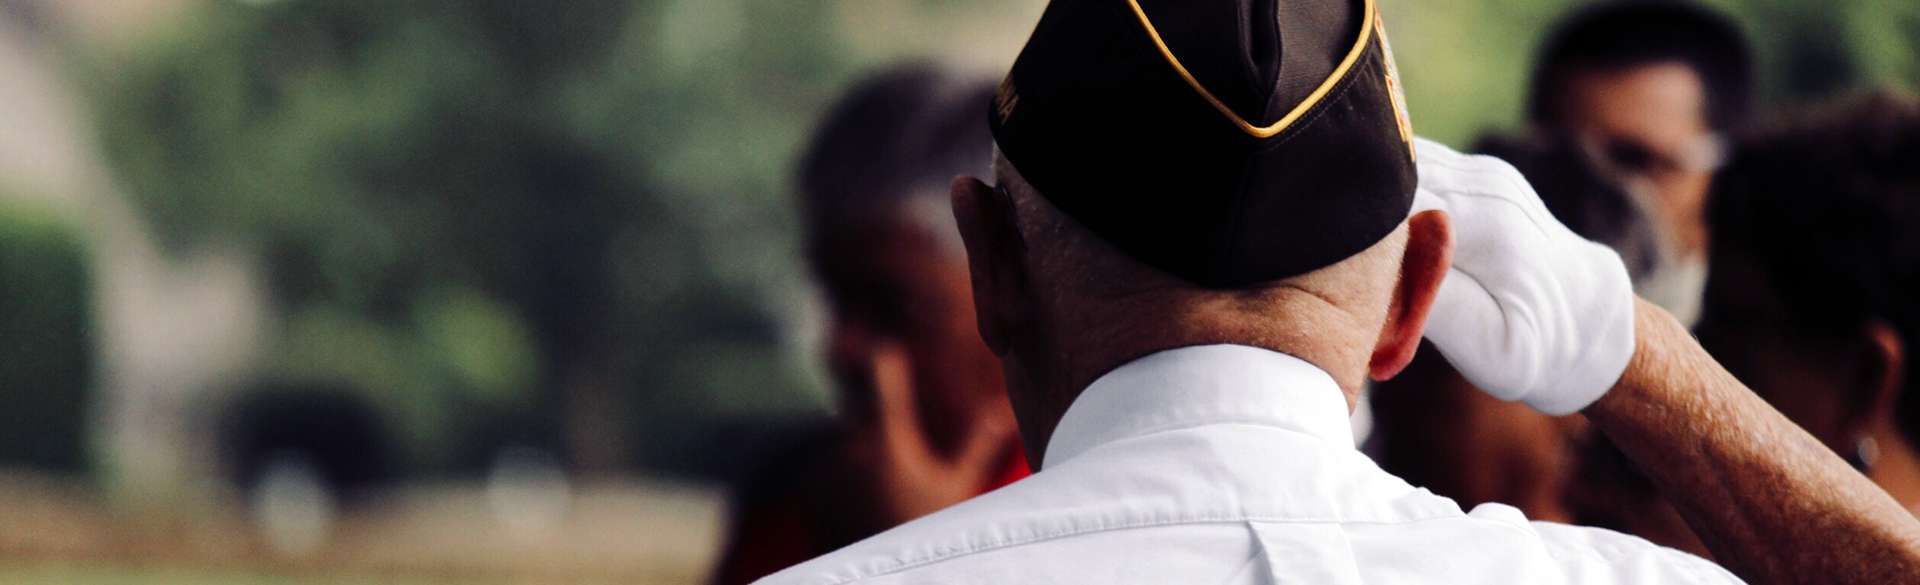 Veterans with Traumatic Brain Injuries Have Higher Suicide Risk